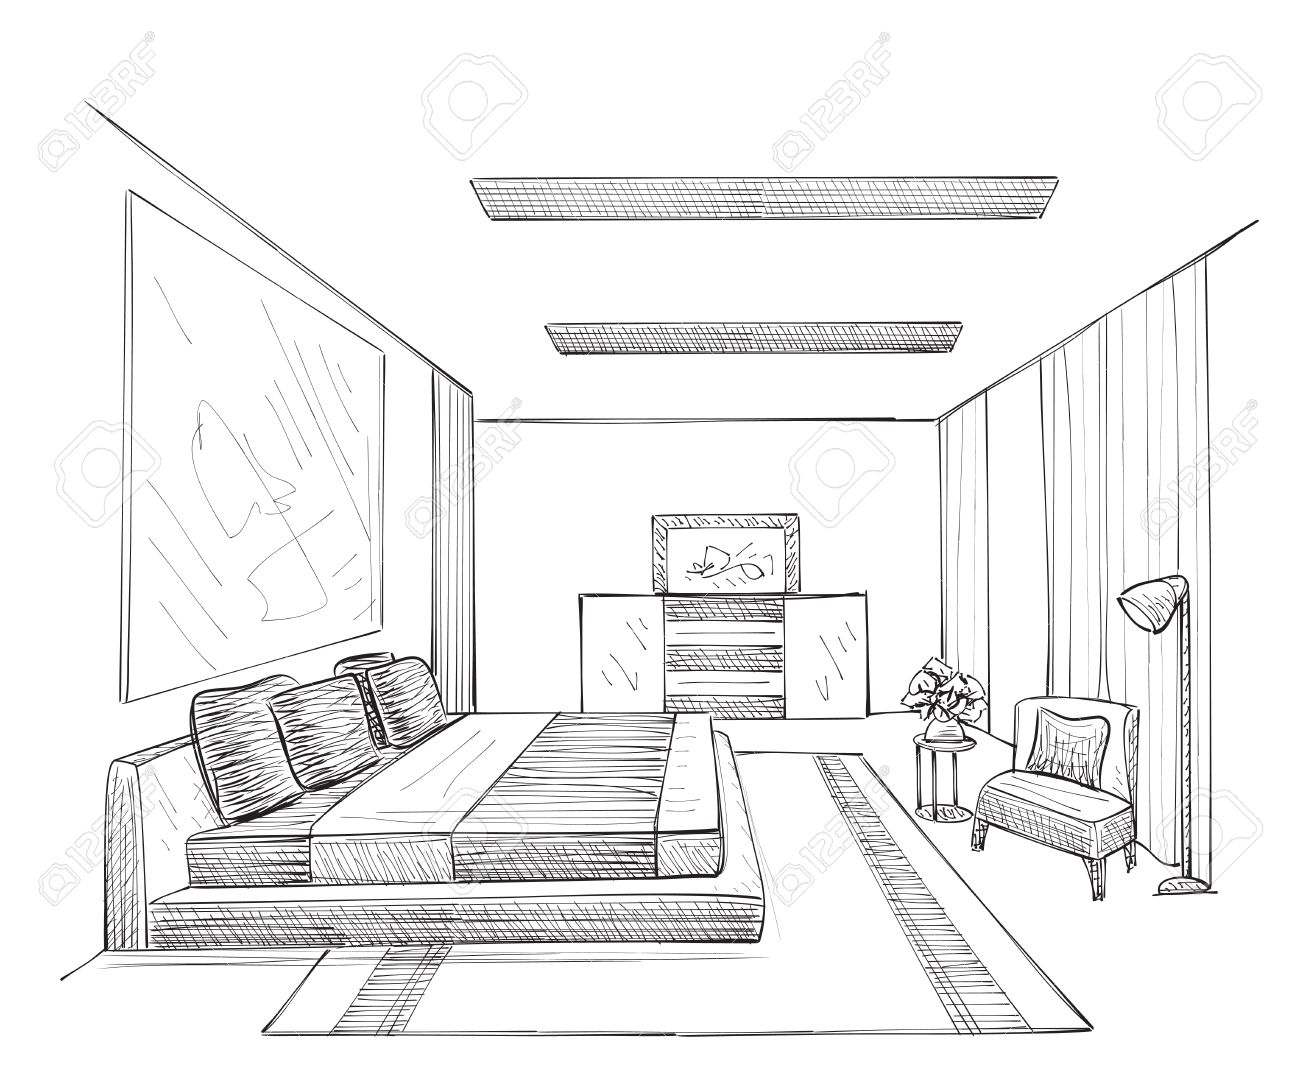 Bedroom modern interior vector drawing isolated on white background Stock  Vector   49238190. Bedroom Modern Interior Vector Drawing Isolated On White